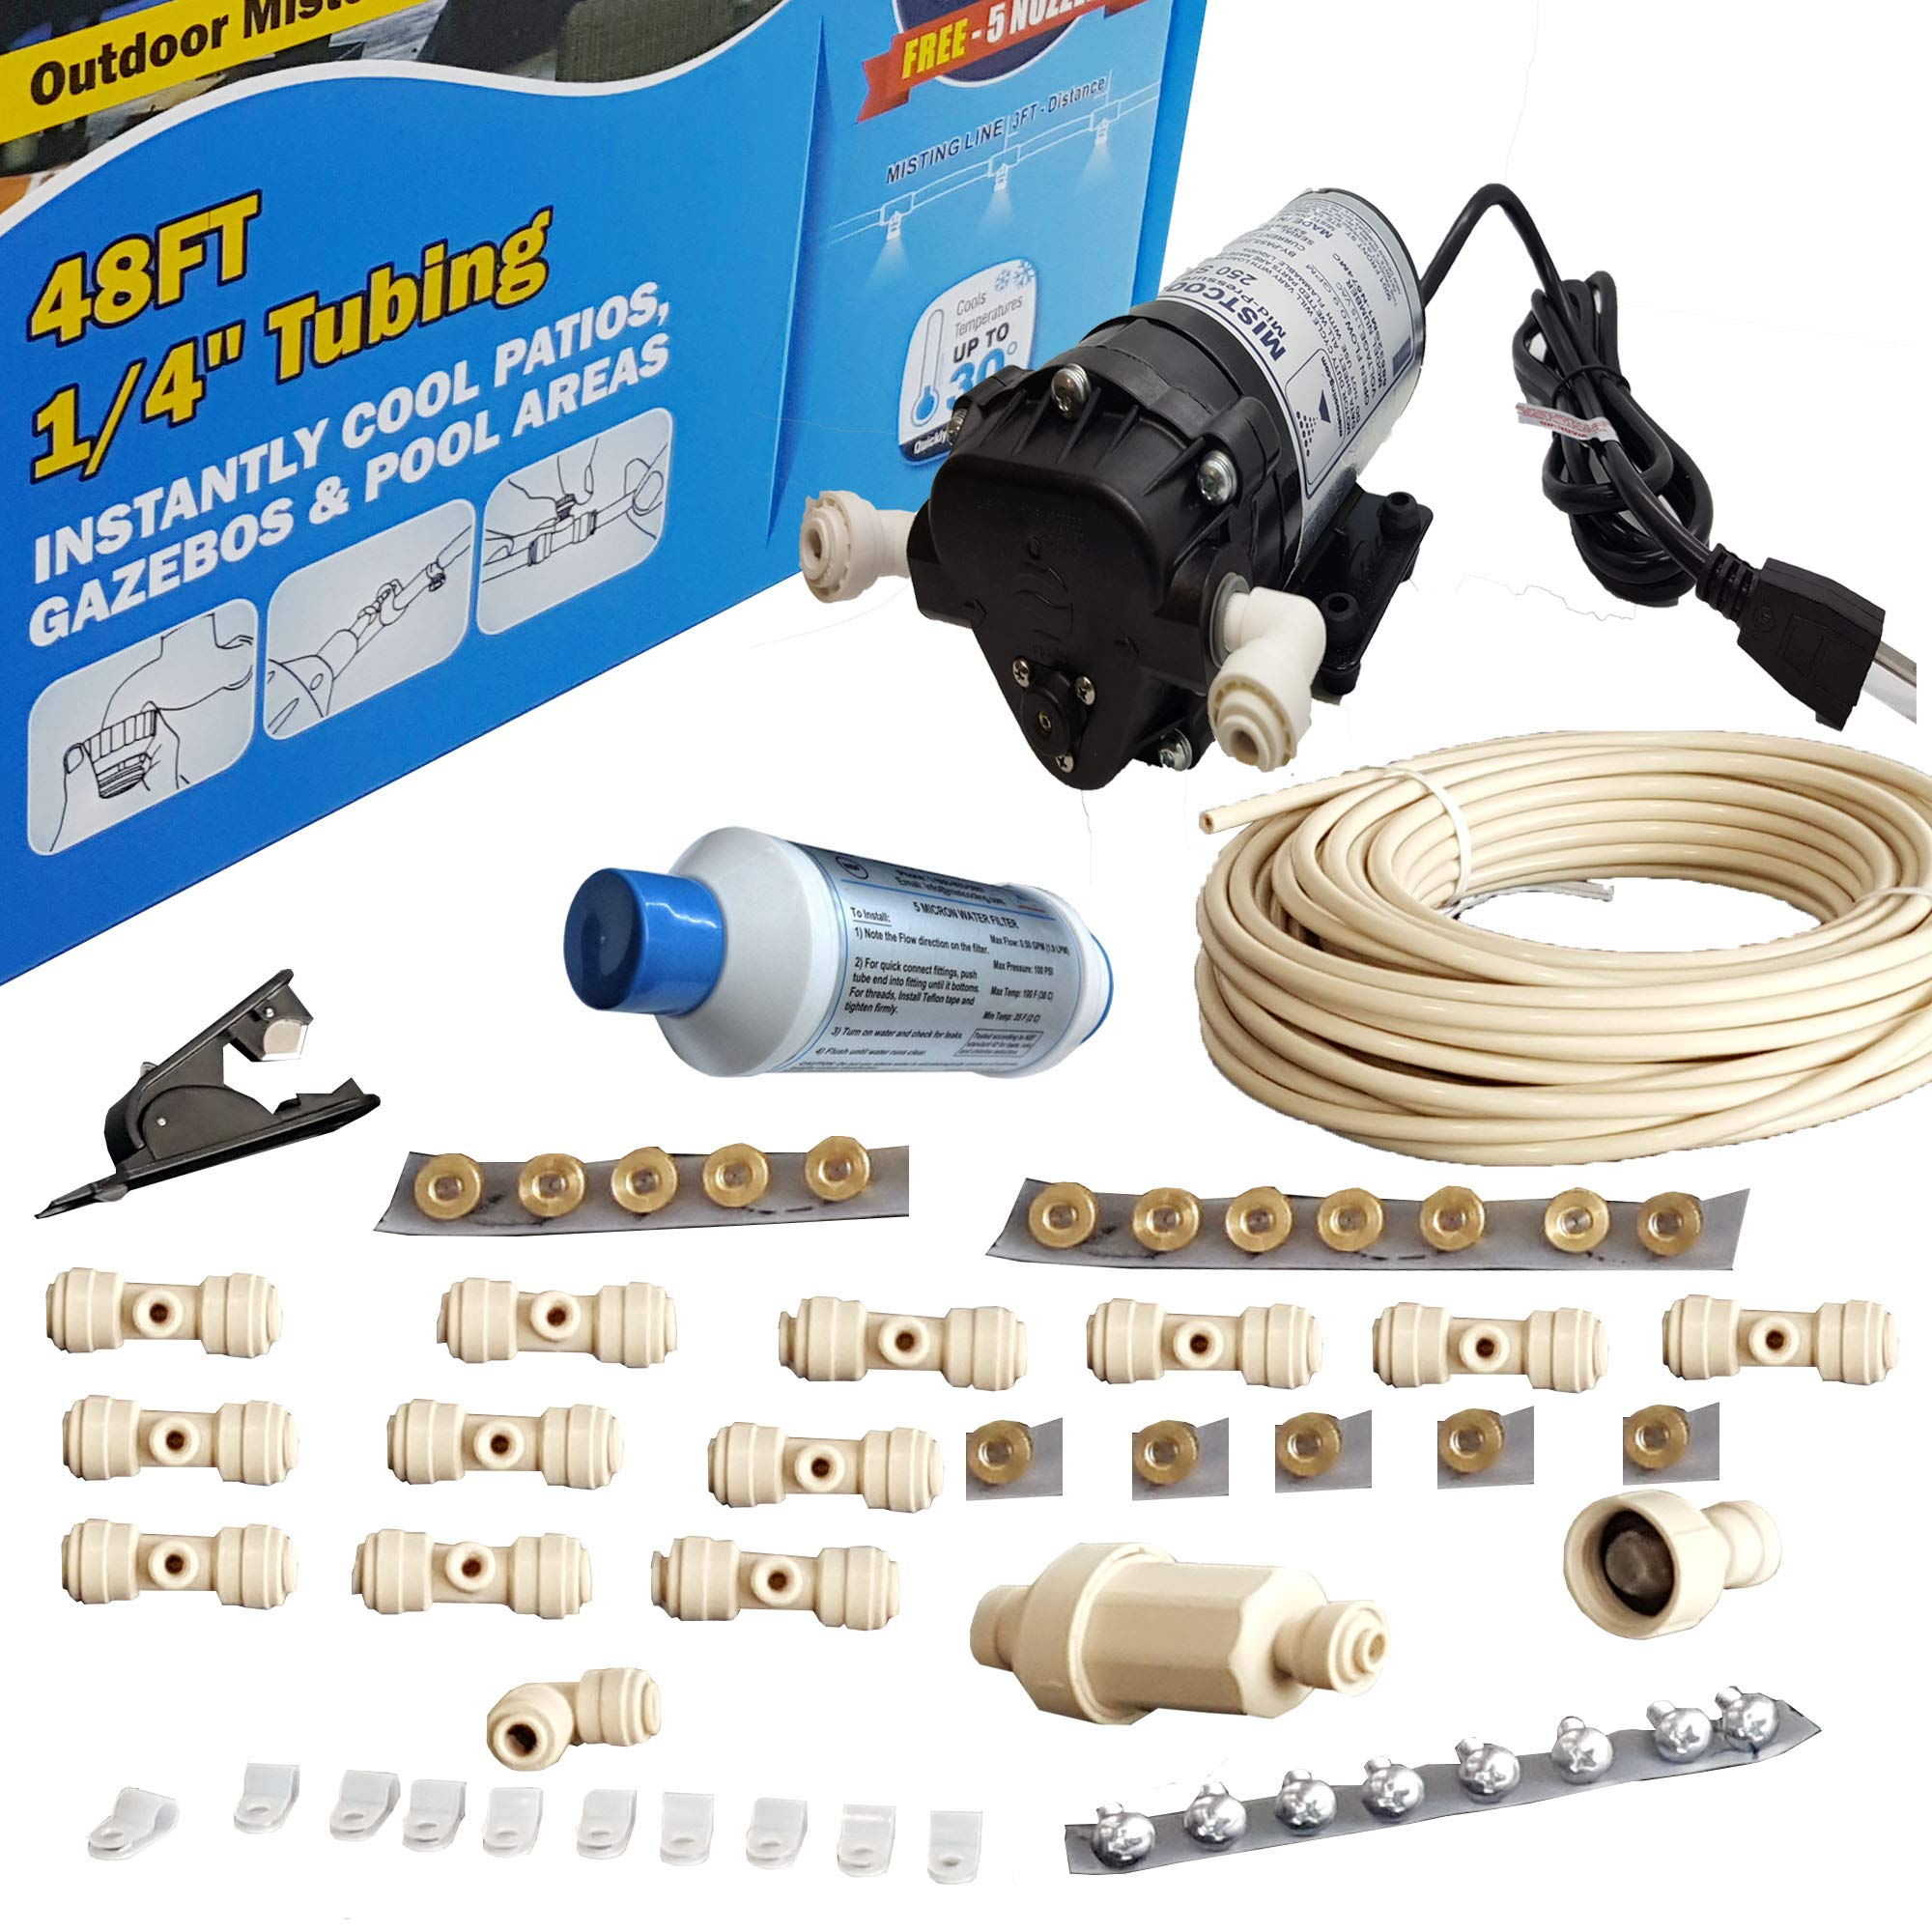 Hydrobreeze Misting System - 160 PSI Misting Pump - with Scale Inhibitor Filter - Push to Connect Fittings (48 Ft 12 Nozzles Kit) by Hydrobreeze